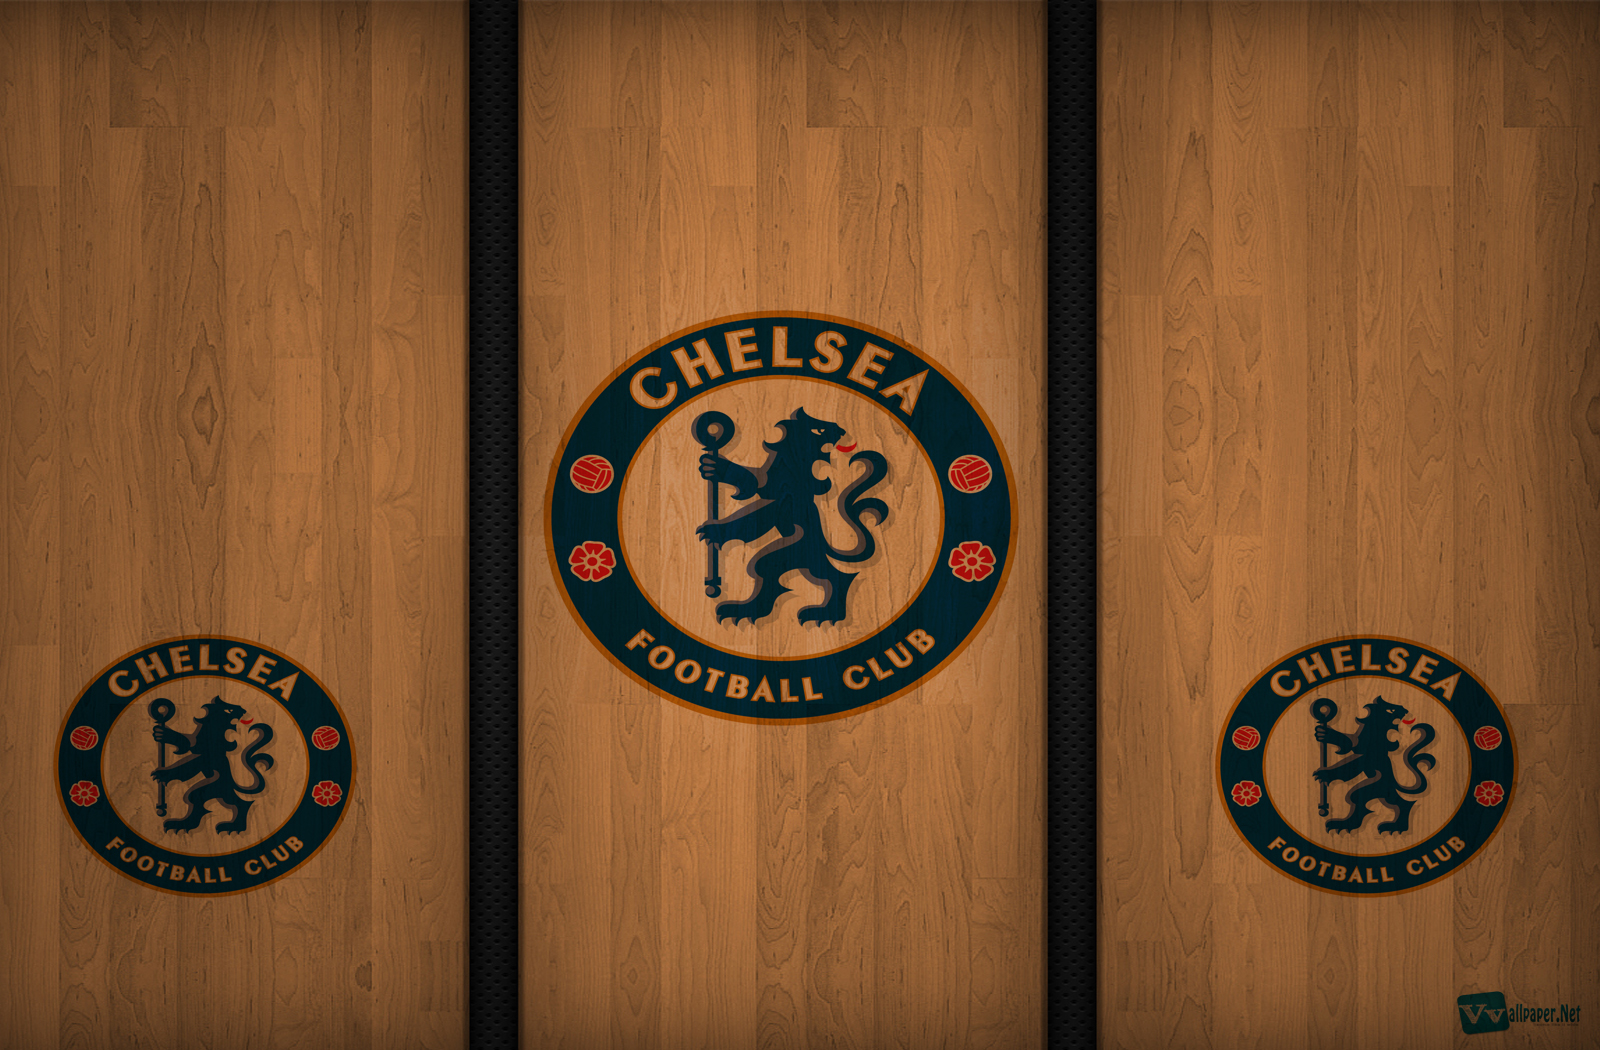 Chelsea fc wallpaper hd wallpapersafari chelsea football club logo hd wallpapers download wallpapers in 1600x1050 voltagebd Gallery